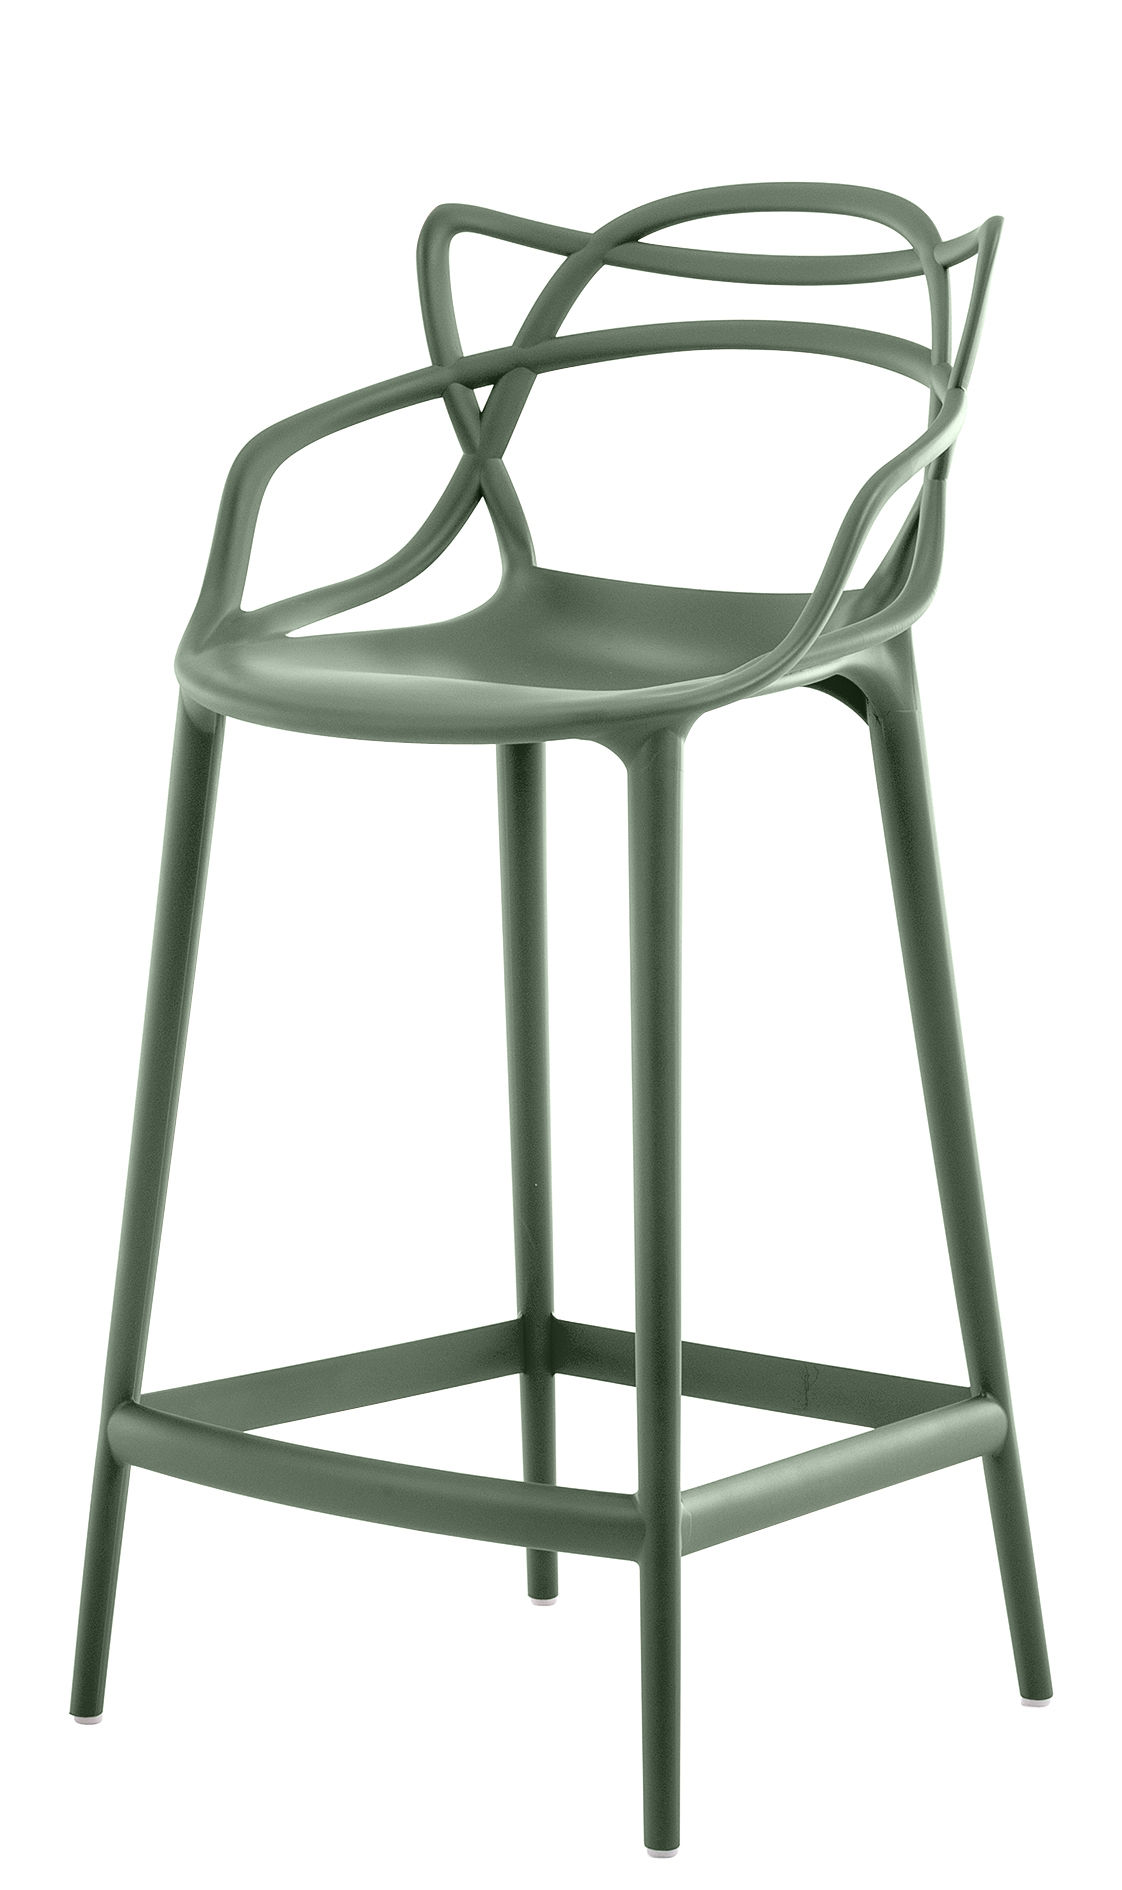 Masters Bar Chair H 65 Cm Polypropylen Green By Kartell